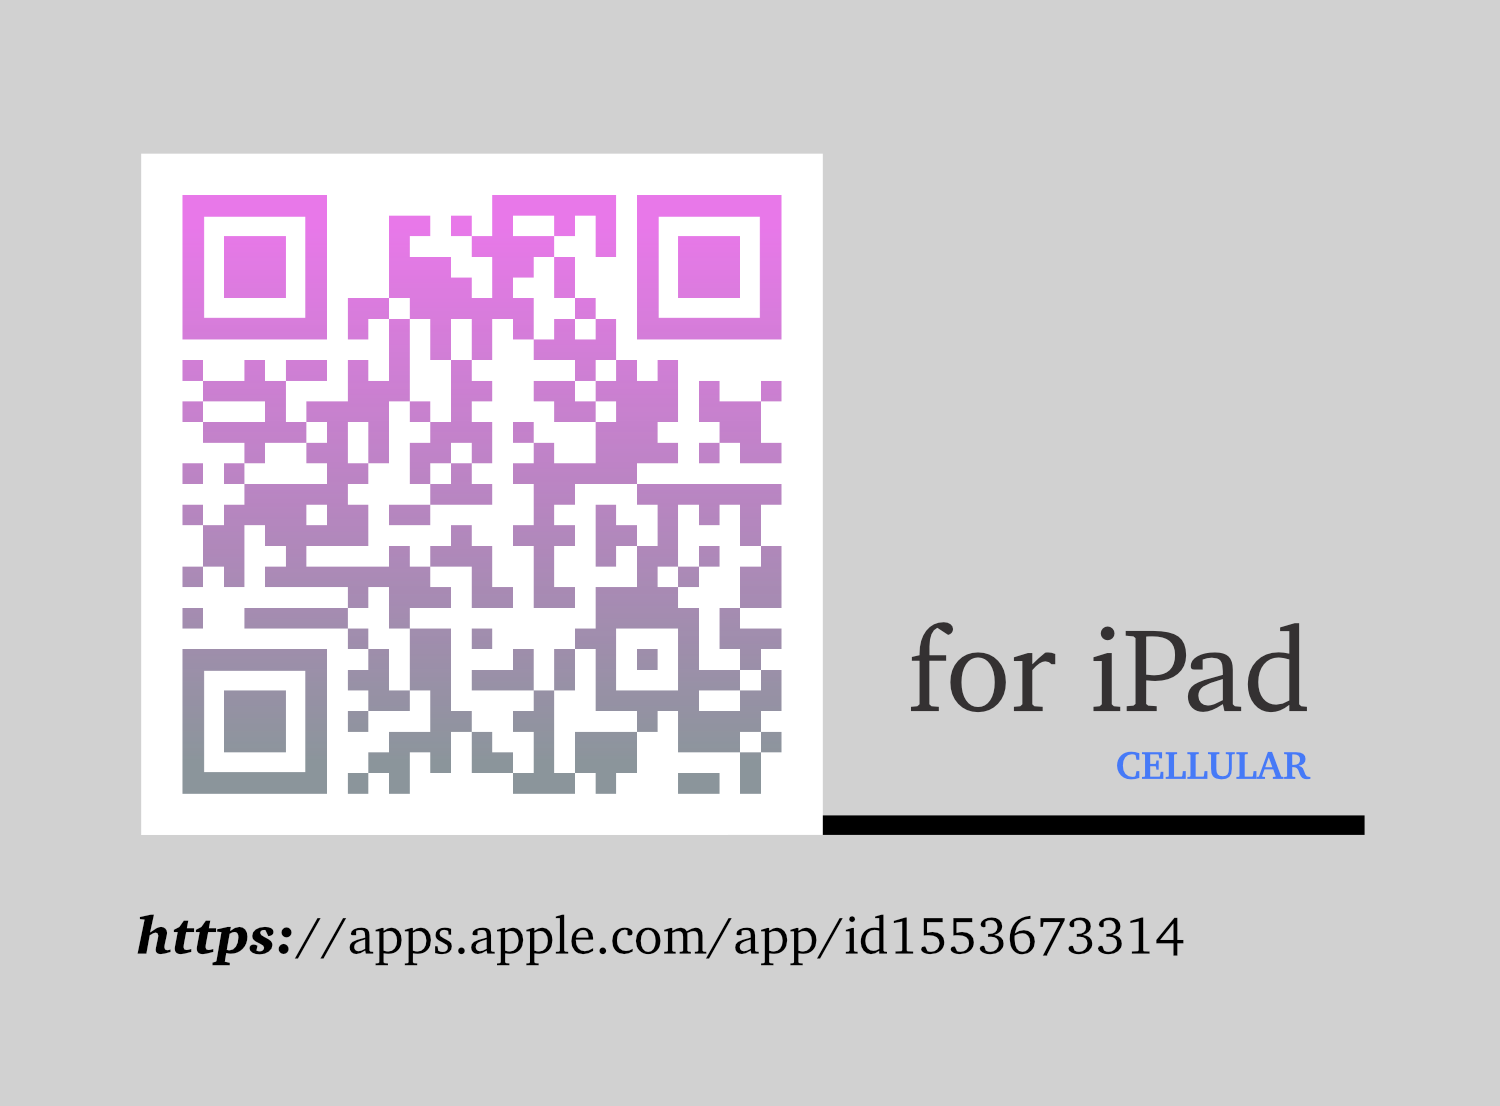 Image showing: 1. QR Code to the App in the App Store 2. Text indicating Cellular connectivity is required in the iPad 3. URL of App in the App Store